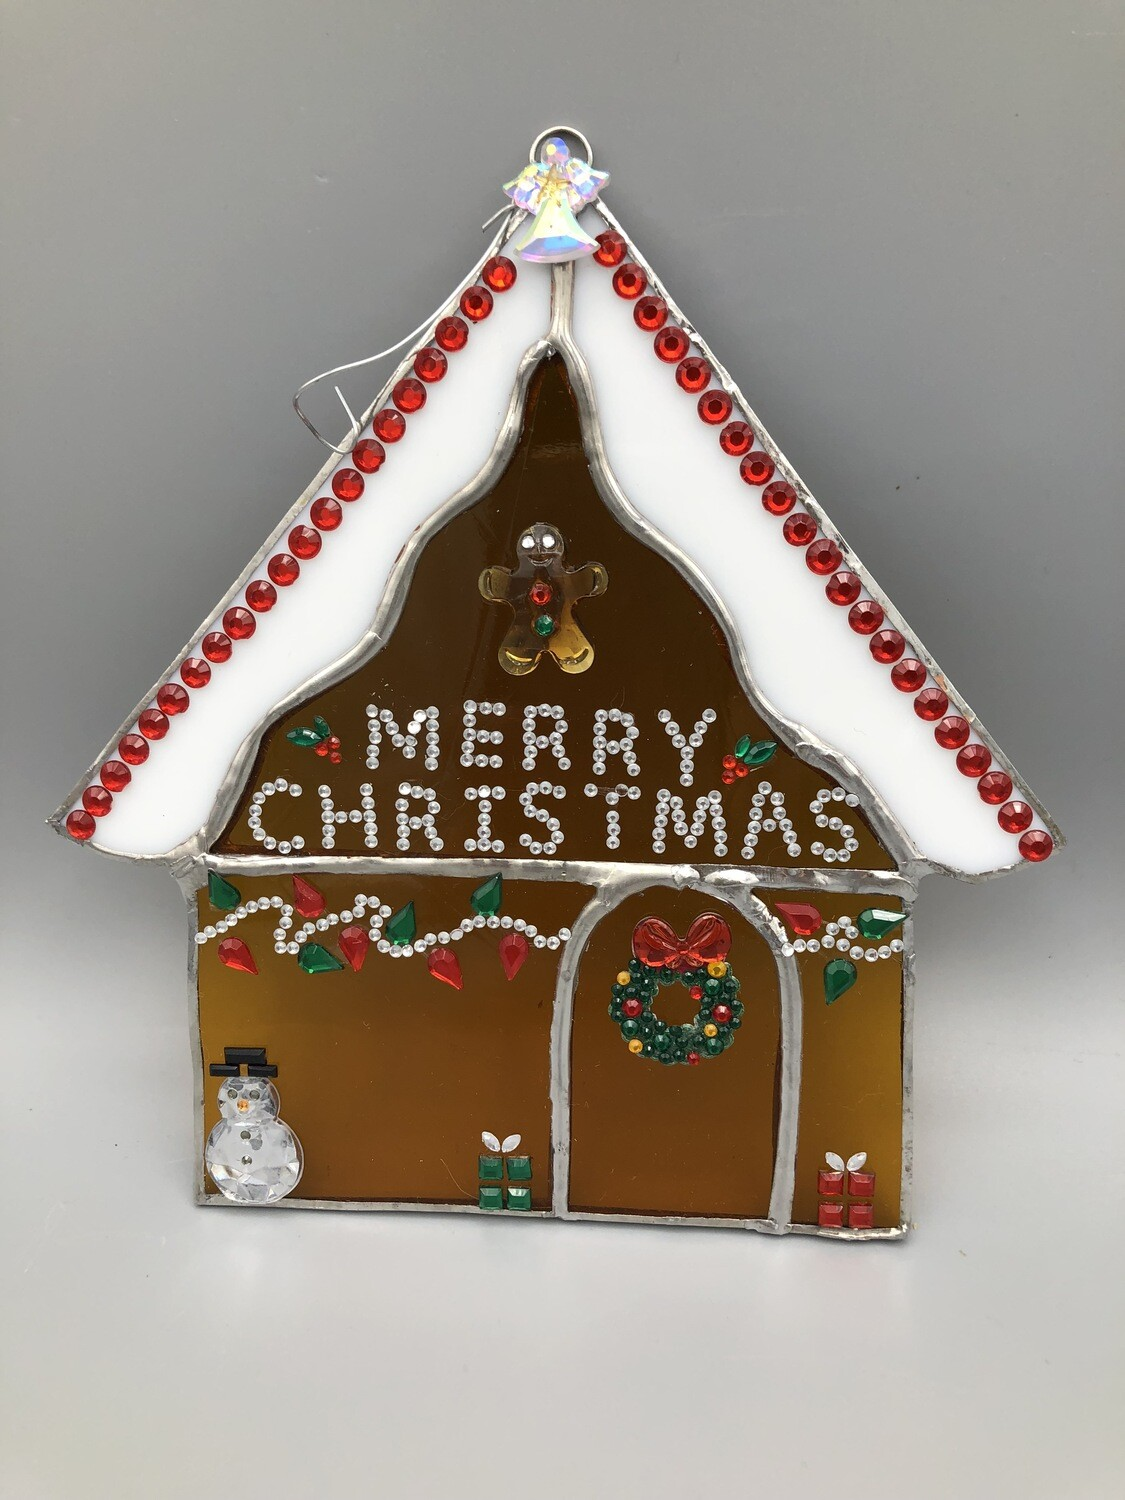 Gingerbread House Stained Glass Class 12/10/21